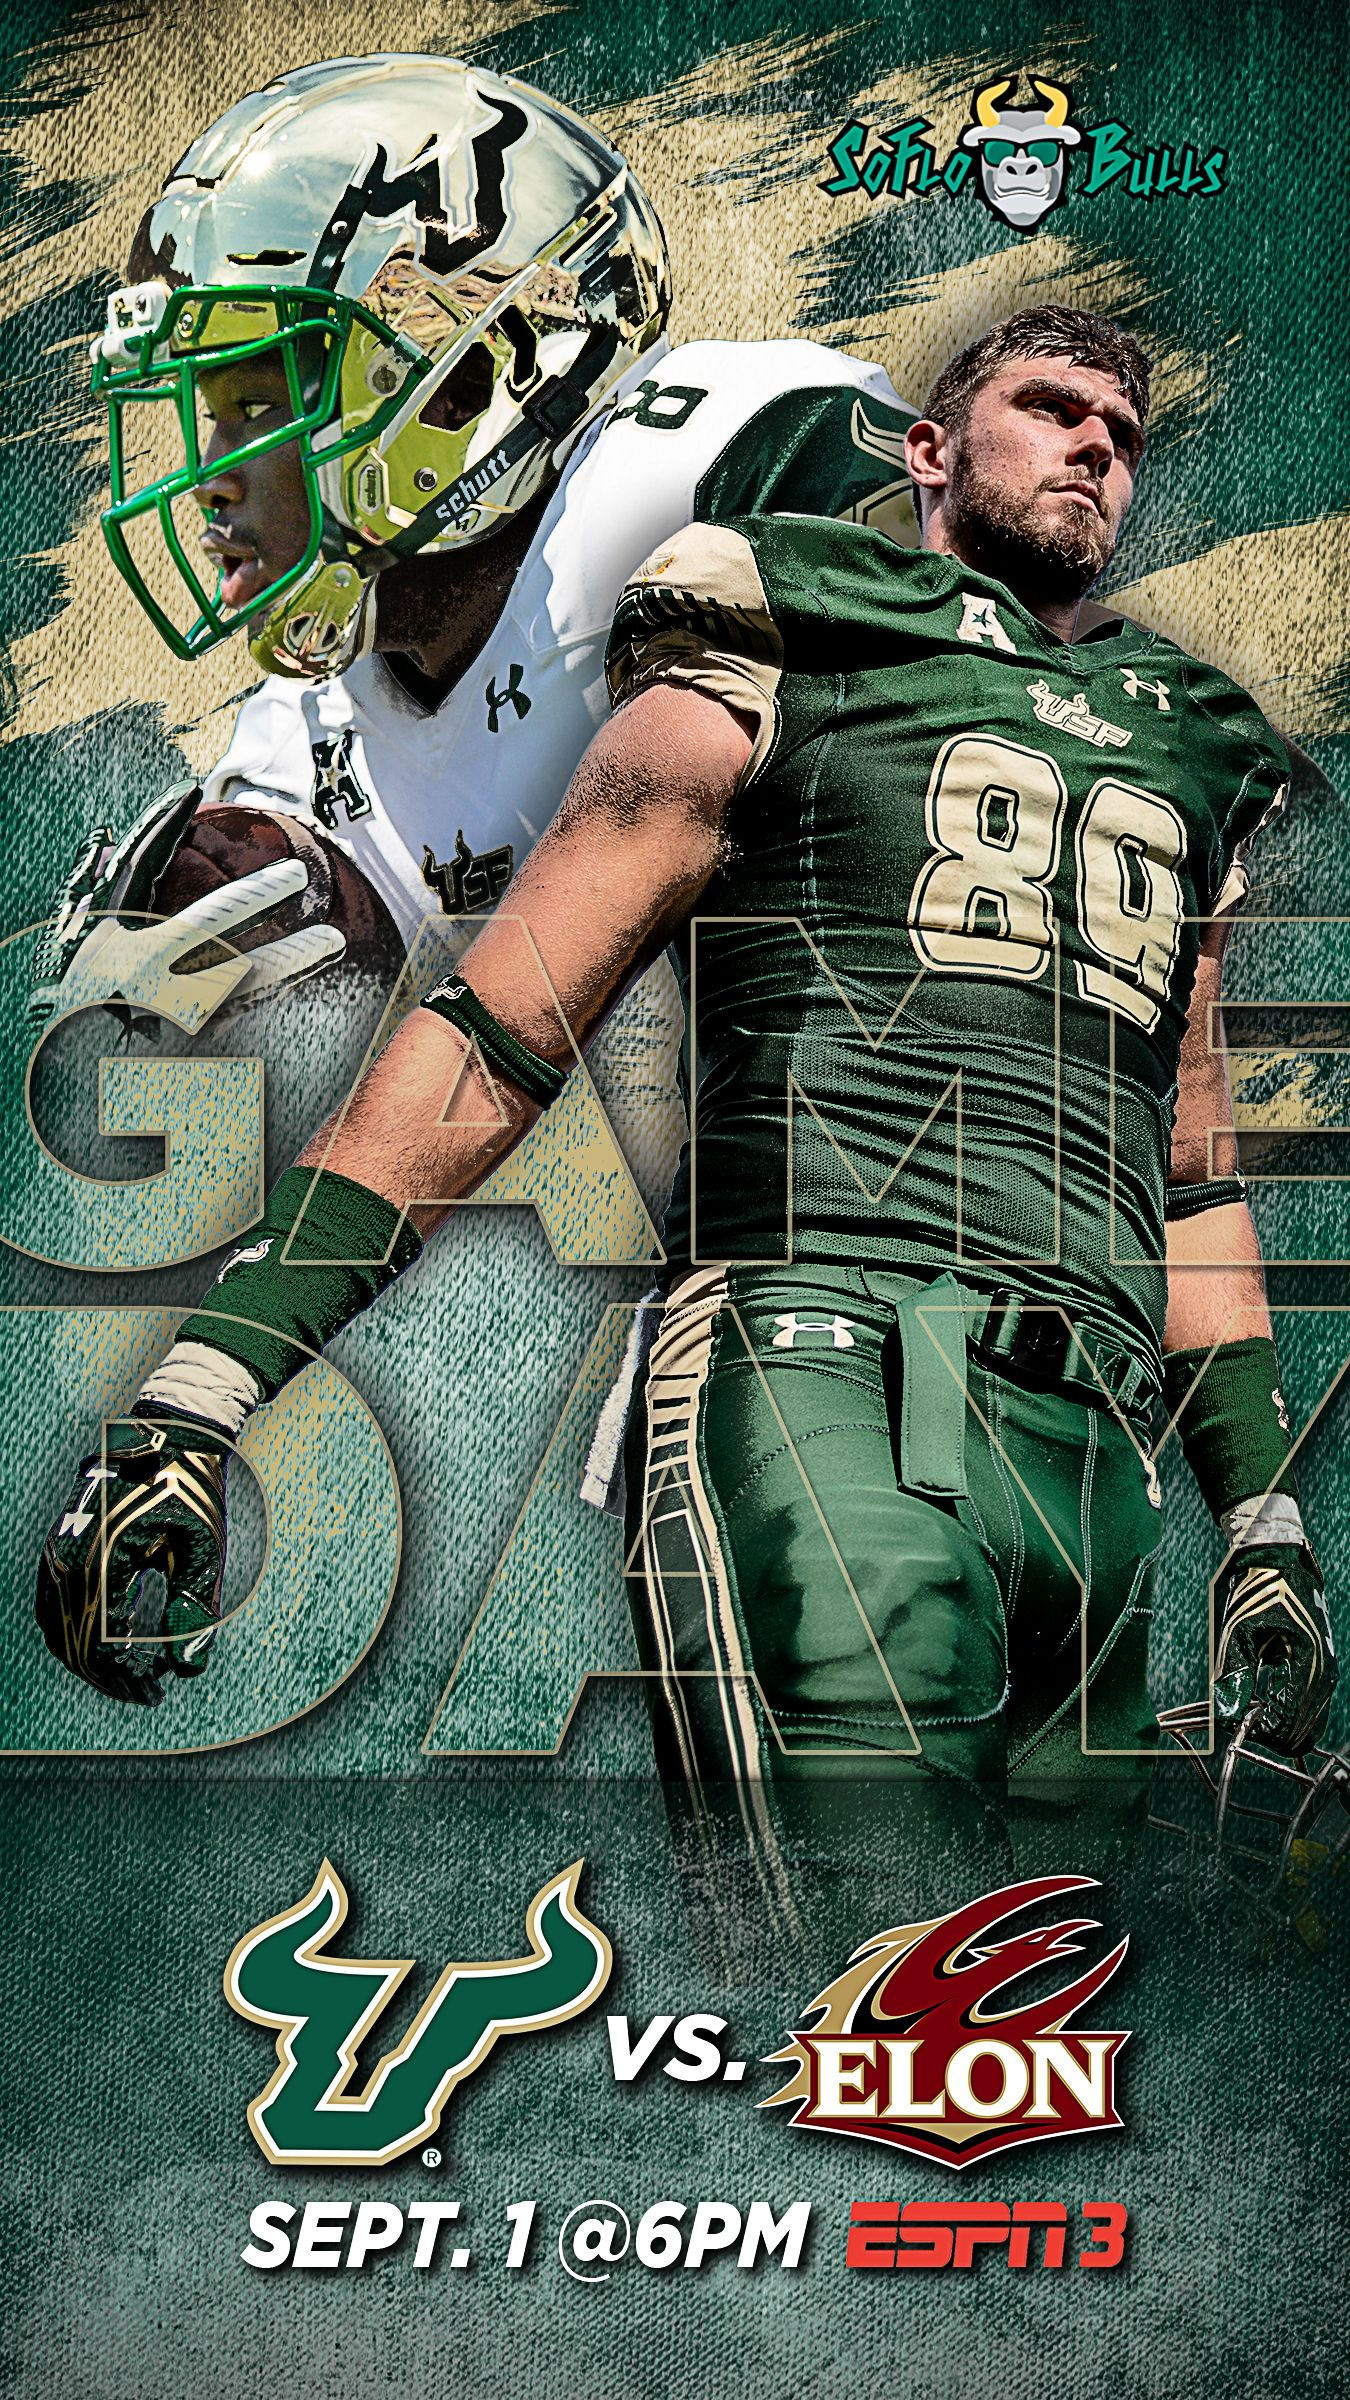 Soflobulls Usf Game Day Promo For 2018 In Week 1 The University Of South Florida Beat Elon To College Football Outfits College Football Memes Football Outfits